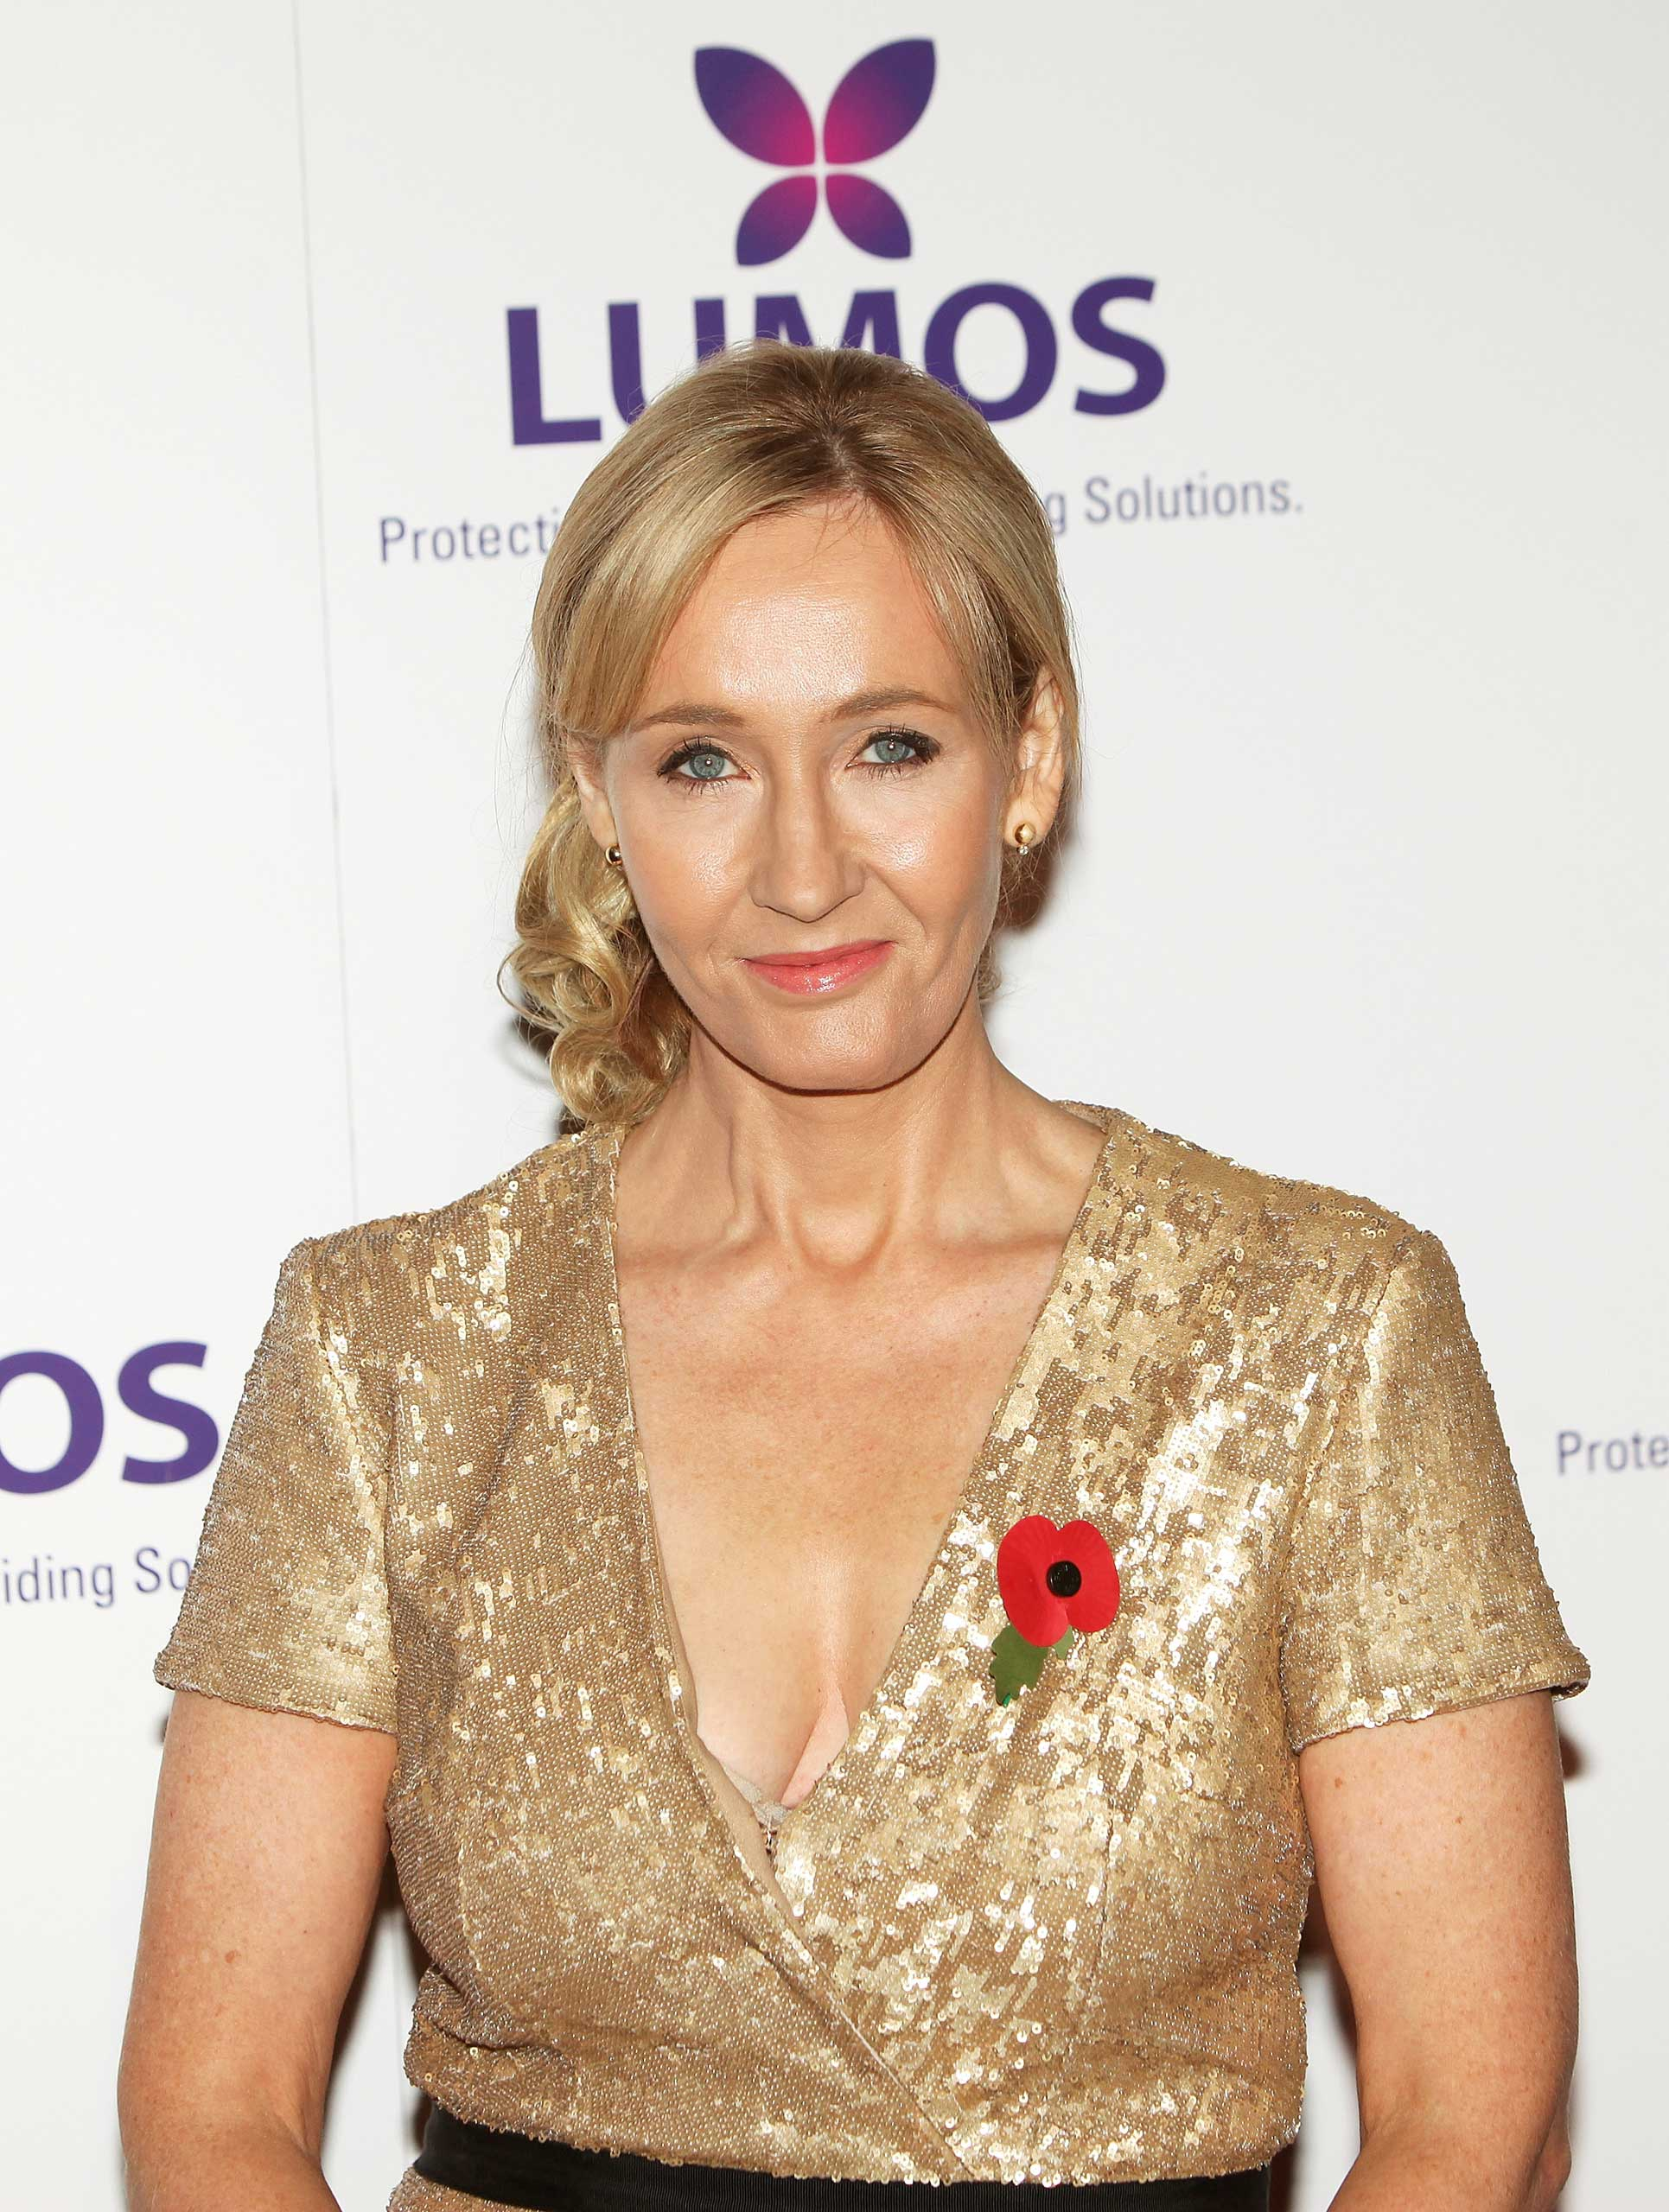 J.K. Rowling attends the Lumos fundraising event hosted by J.K. Rowling at The Warner Bros. Harry Potter Tour on November 9, 2013 in London, England.